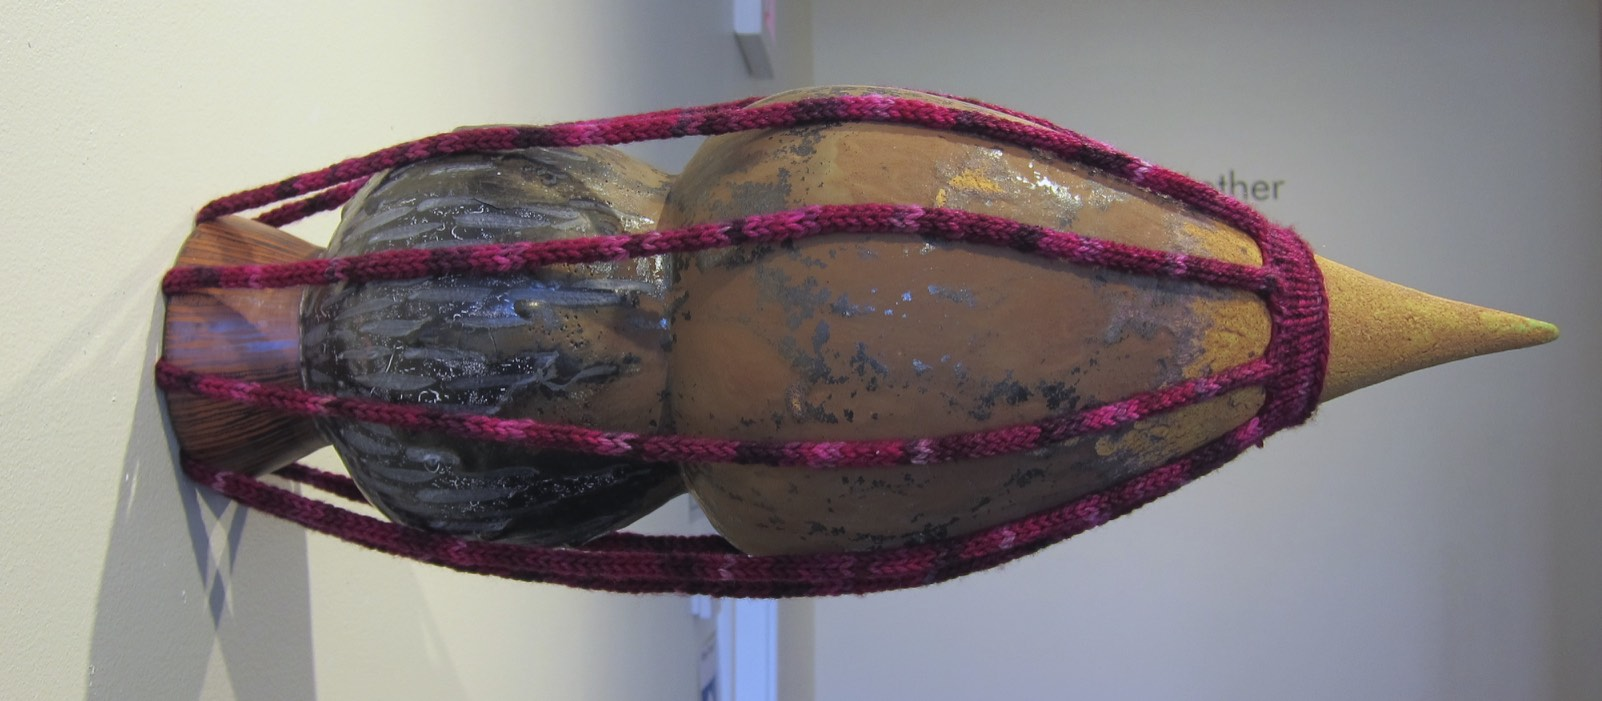 sculpture untitled (brown with purpley pink)